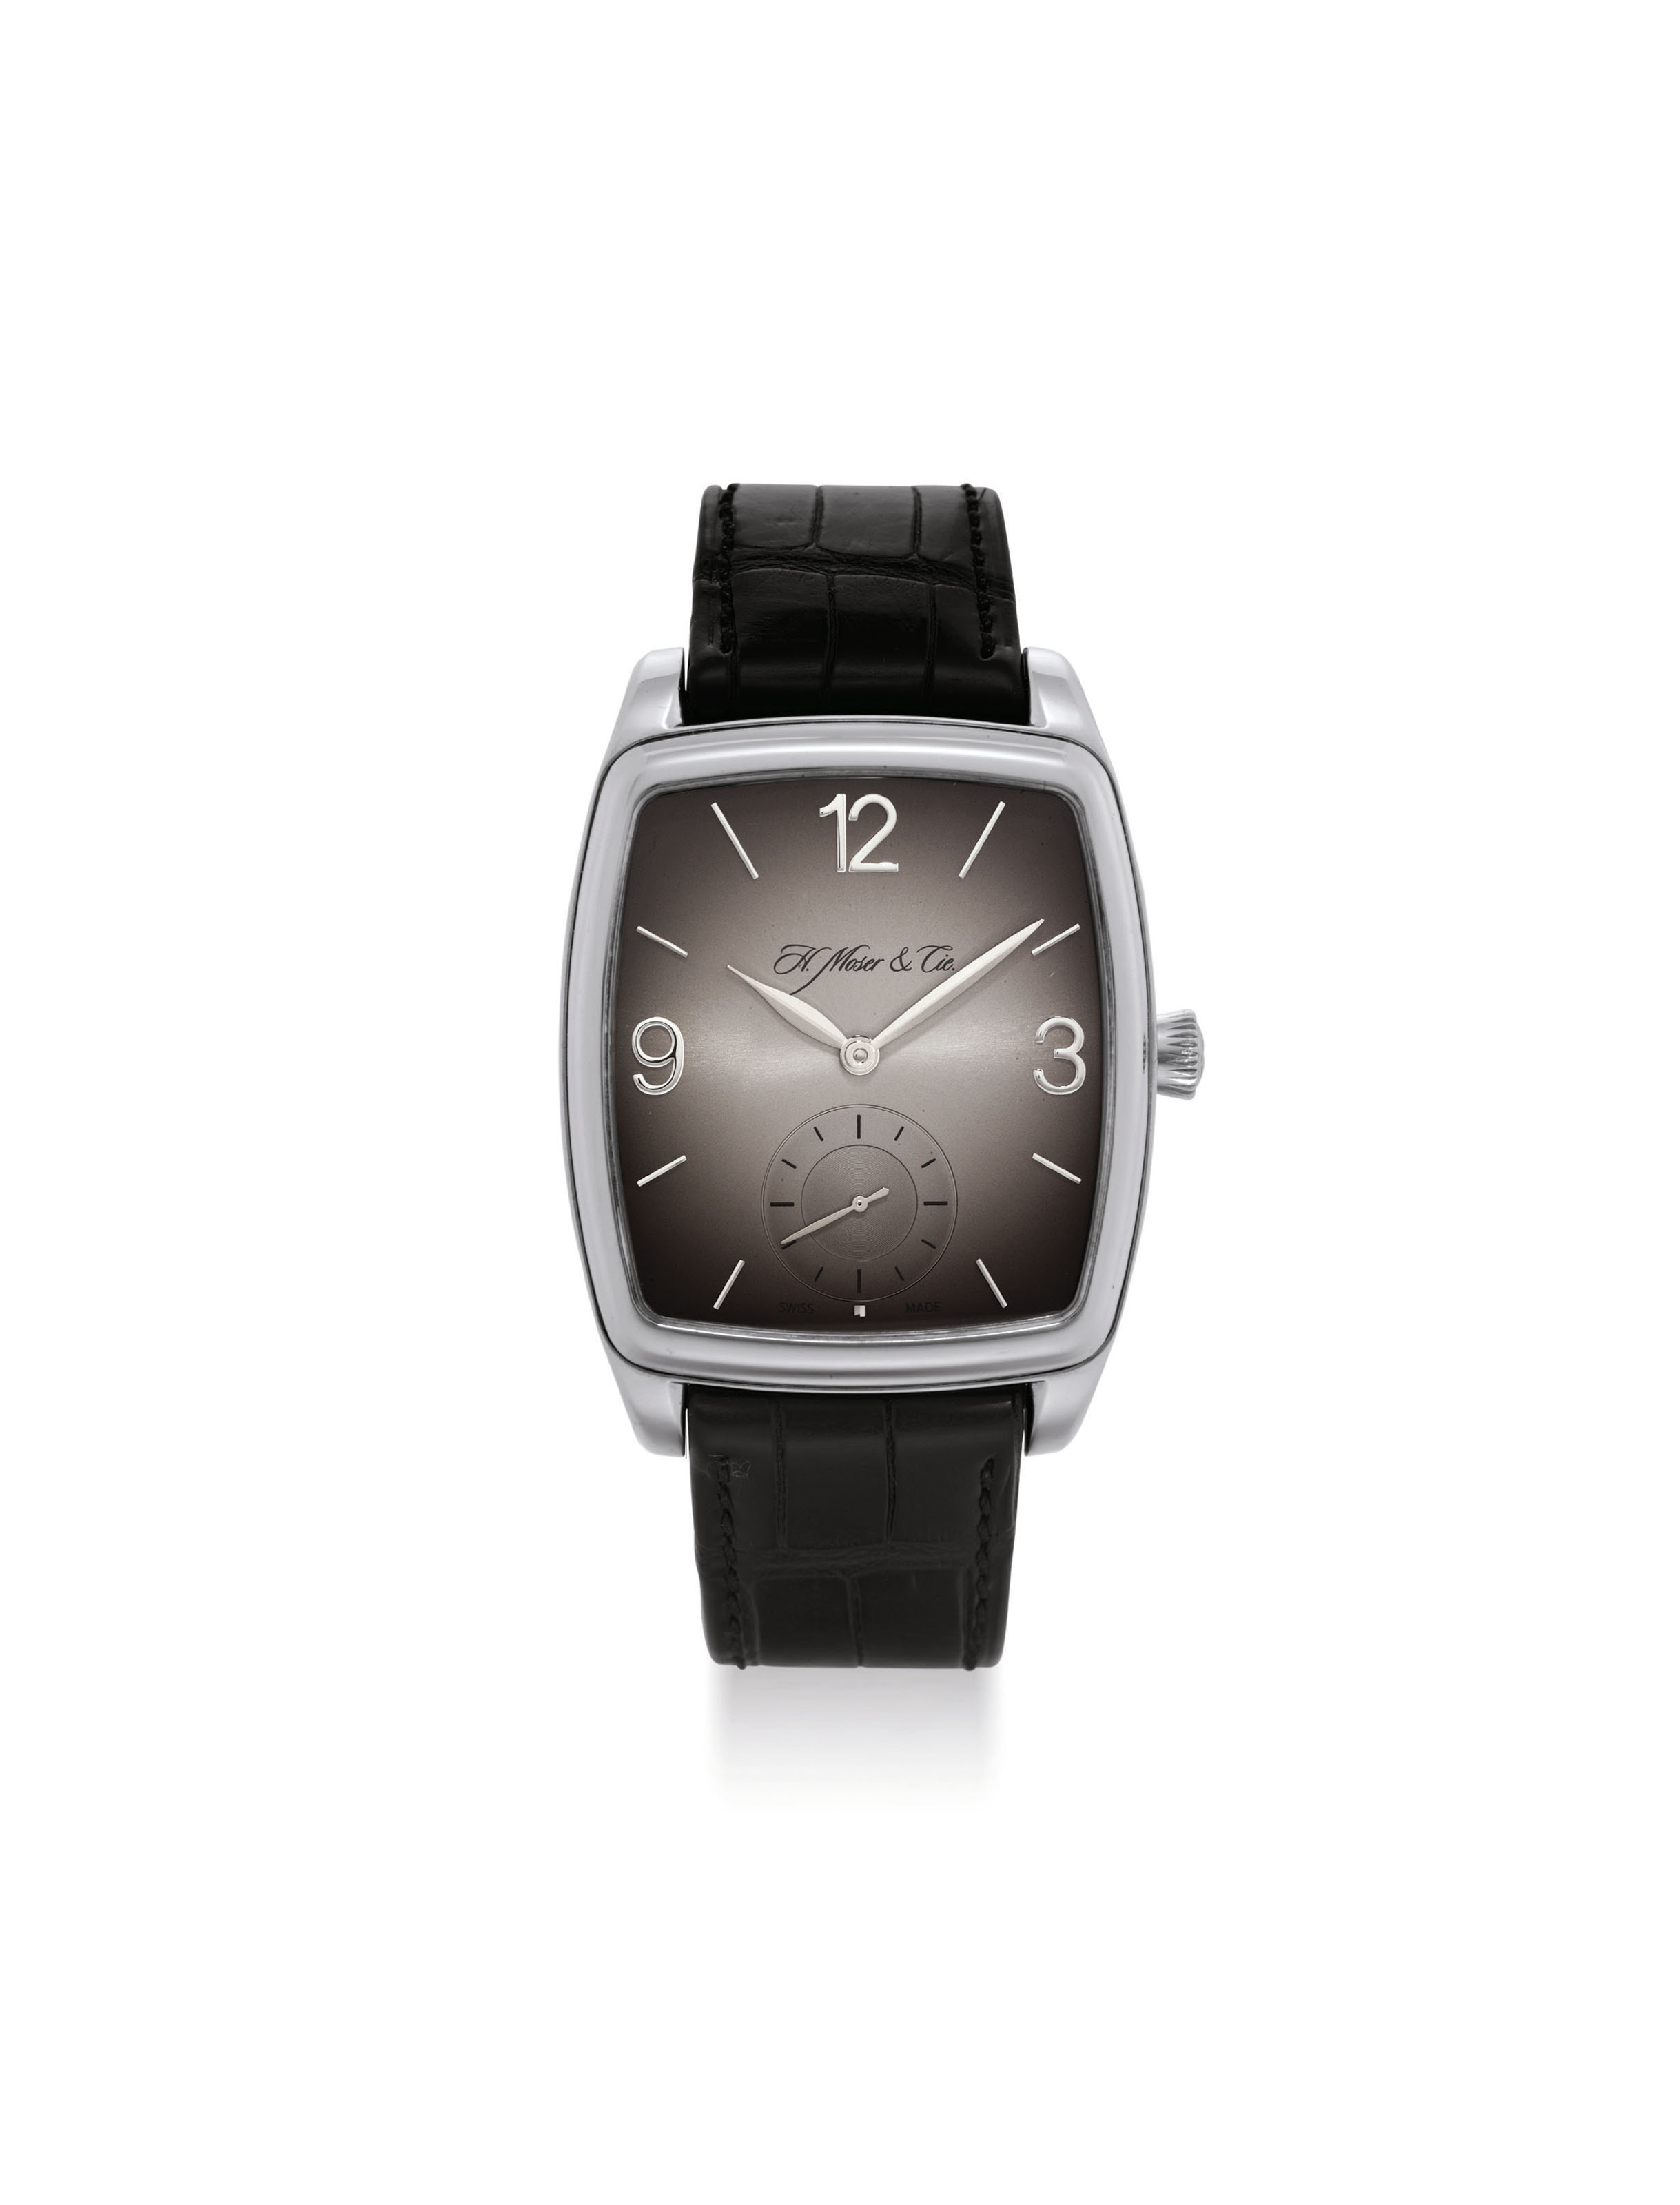 H. MOSER & CIE. A FINE PALLADIUM TONNEAU-SHAPED WRISTWATCH WITH POWER RESERVE AND HACK FEATURE